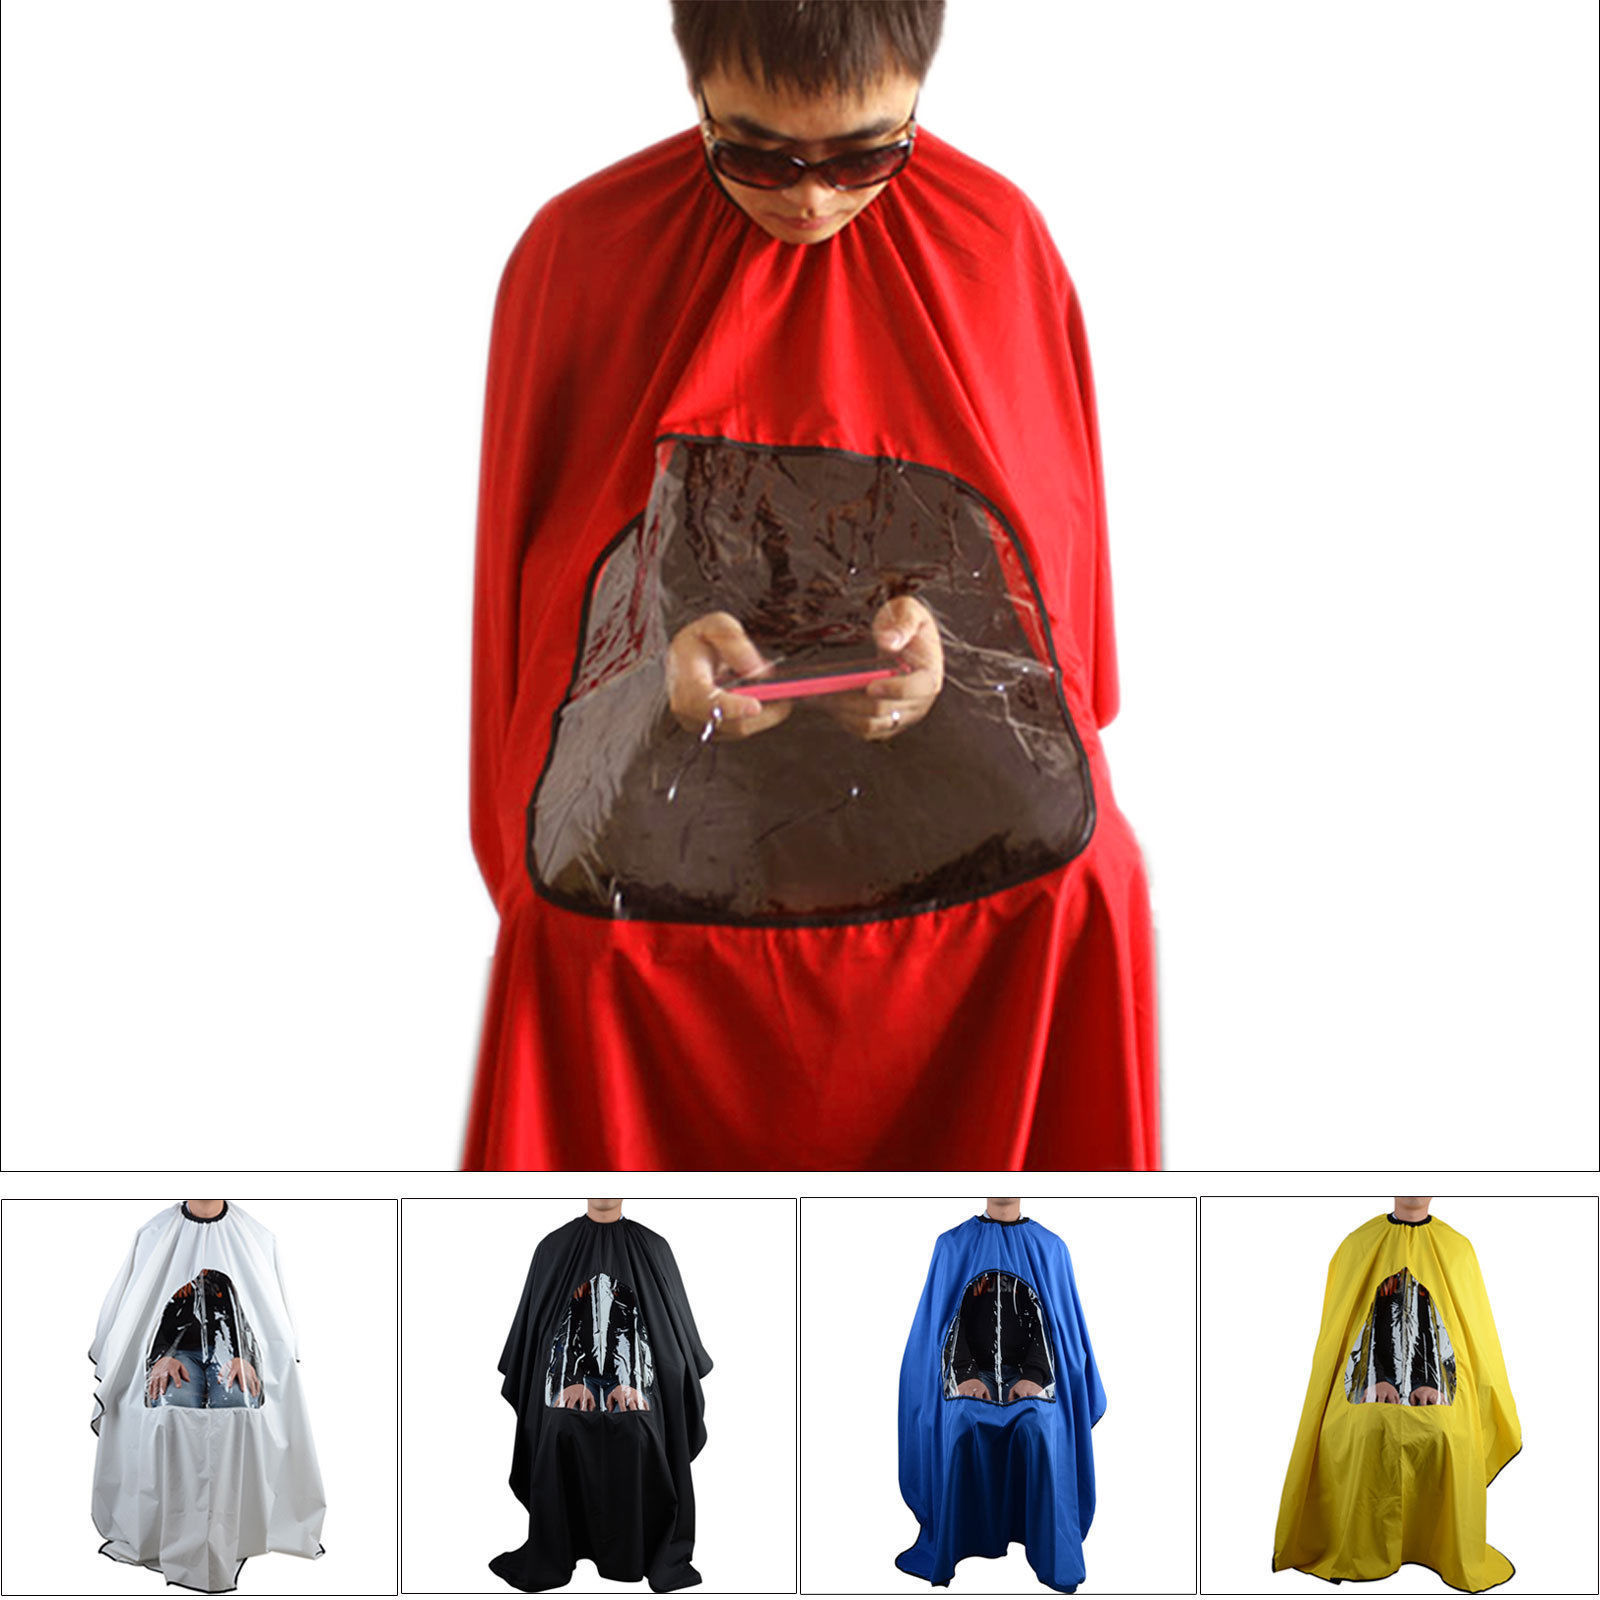 Men's Scarves Hearty Pro Salon Barber Hair Cutting Gown Cape With Viewing Window Hairdresser Apron